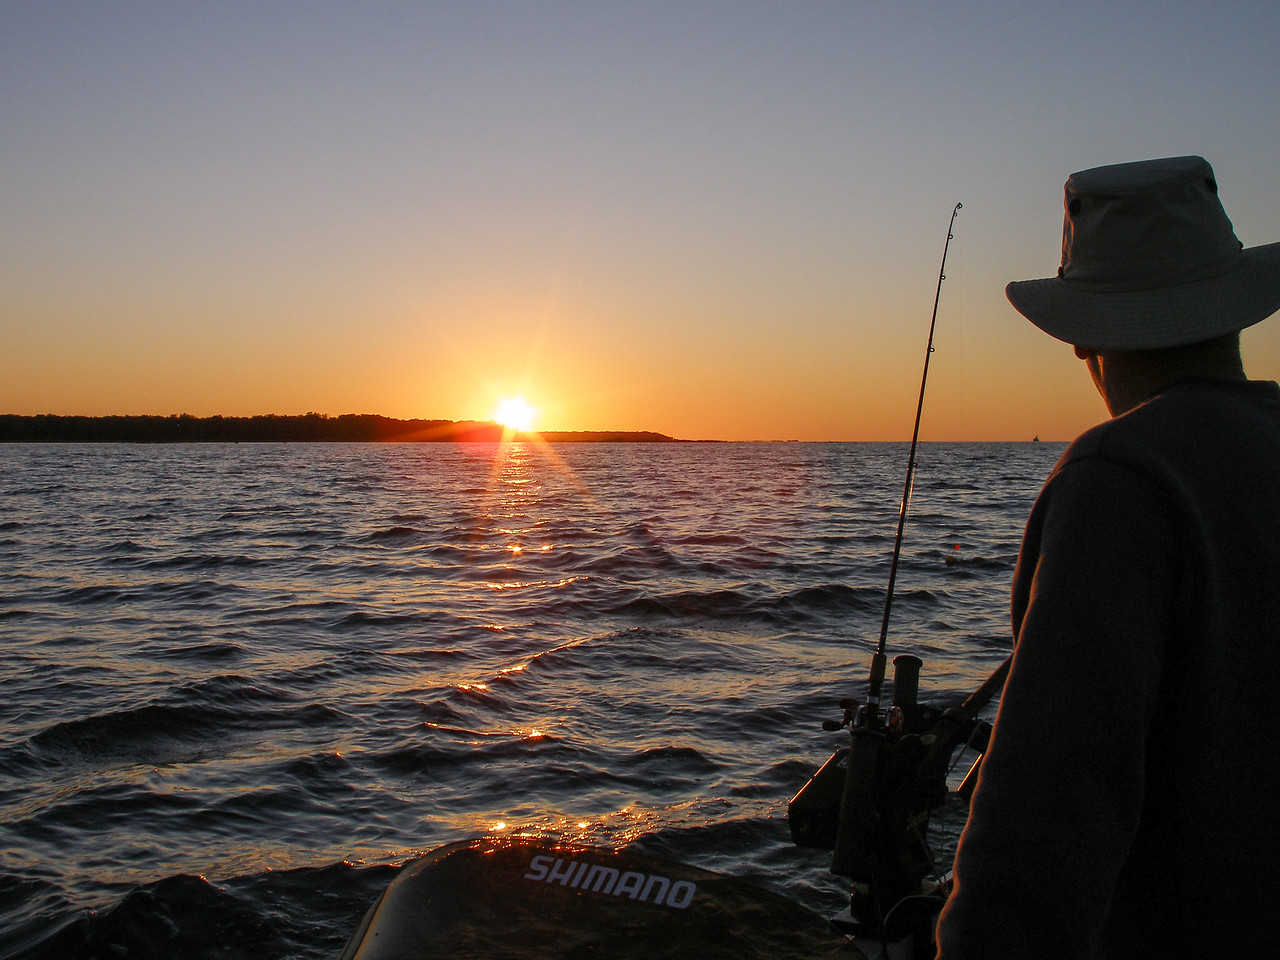 Sunset over Gull Island - Photo taken by Eric - October 2008